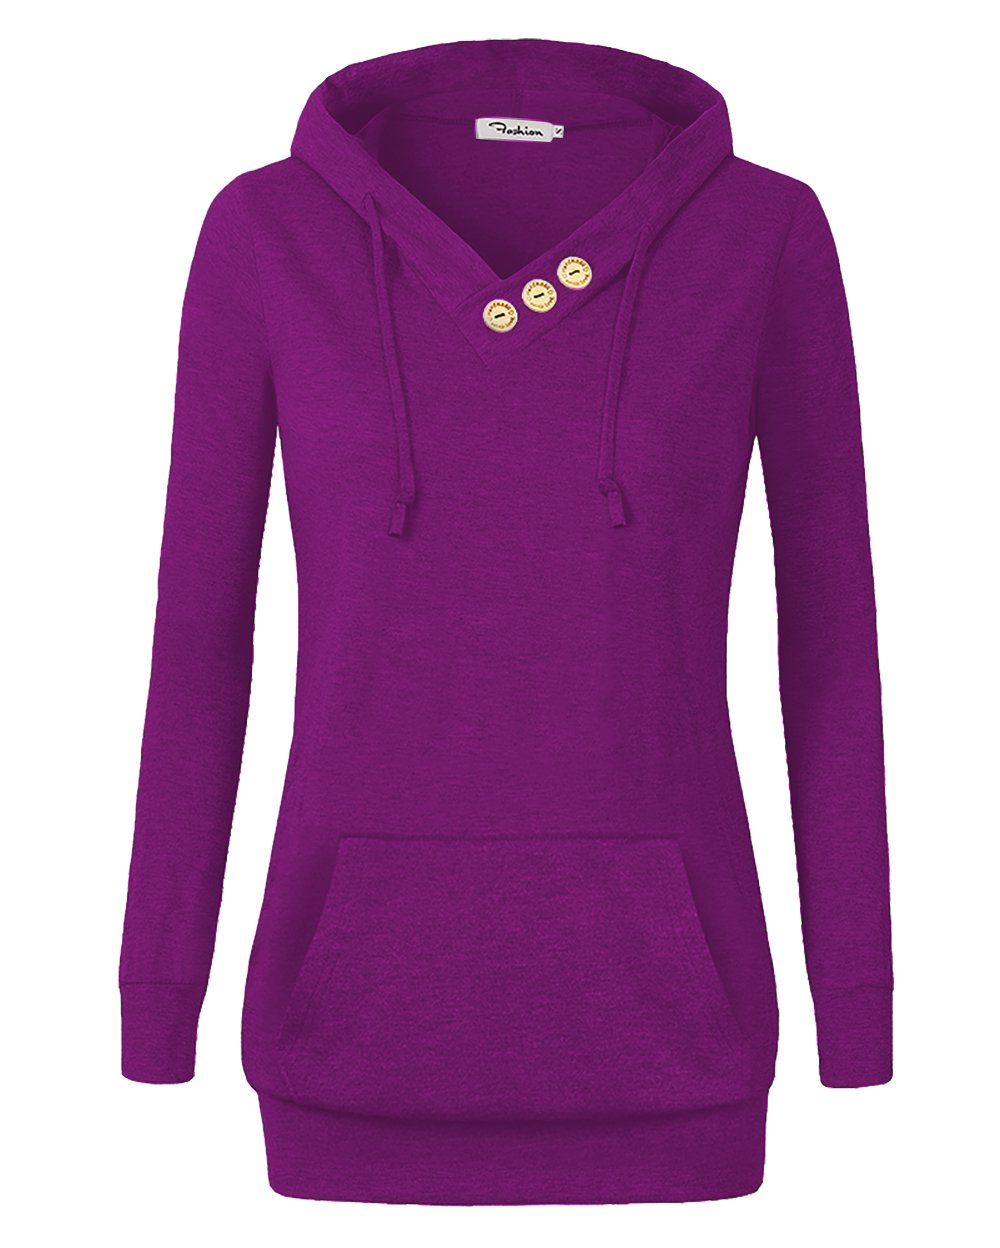 VOIANLIMO Women's Sweatshirts Long Sleeve Button V-Neck Pockets Pullover Hoodies (Purple Red, XX-Large)